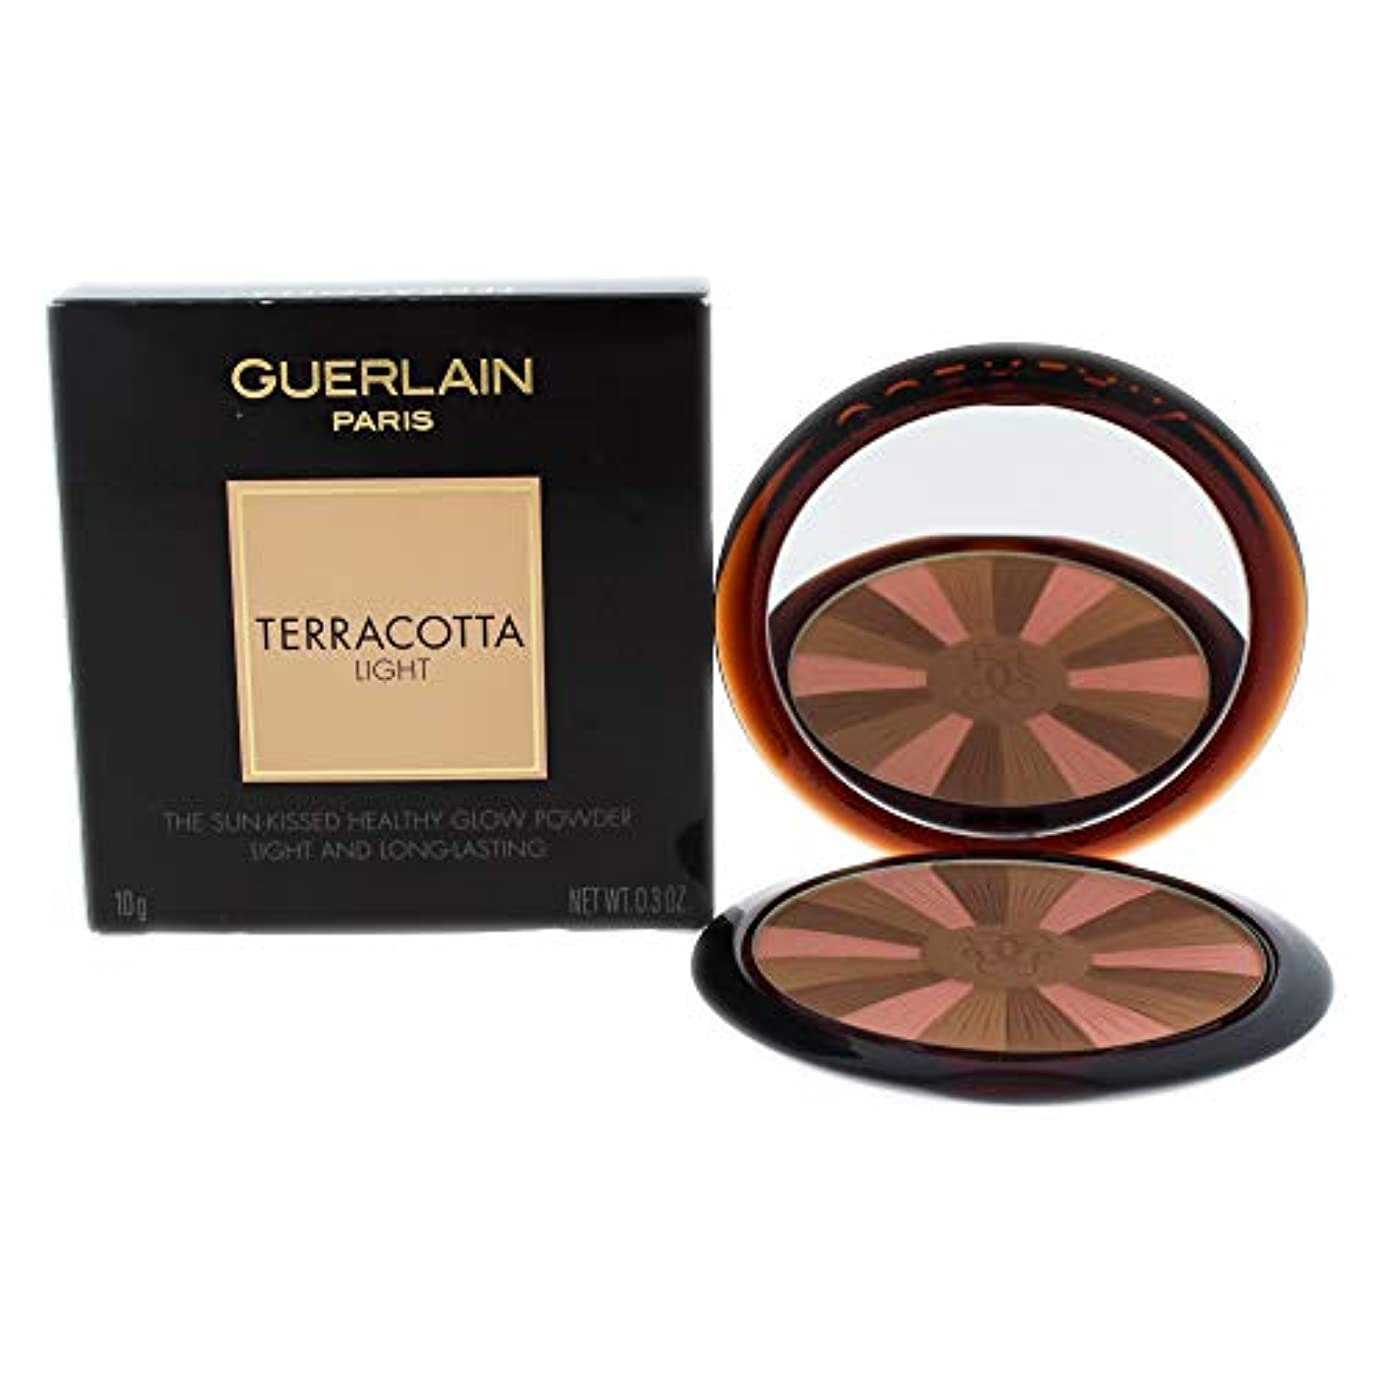 ライトニング腐敗茎ゲラン Terracotta Light The Sun Kissed Healthy Glow Powder - # 02 Natural Cool 10g/0.3oz並行輸入品